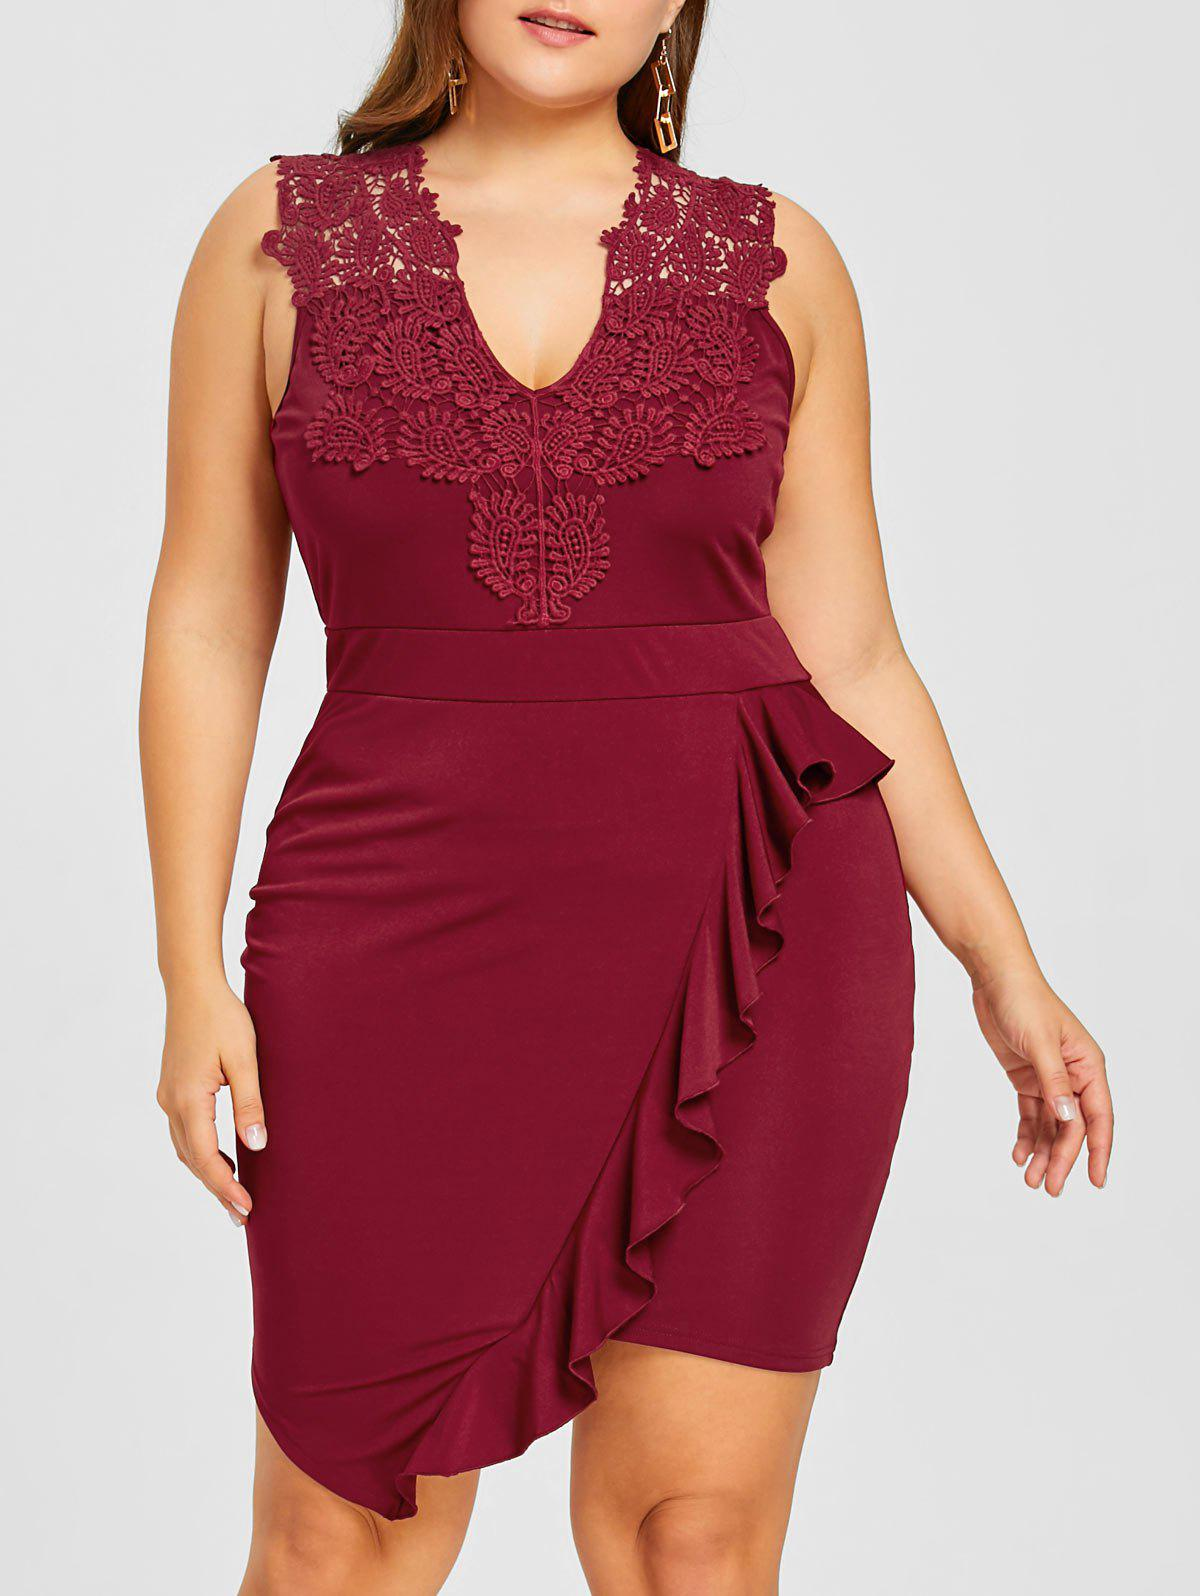 Plus Size Sleeveless Ruffle Bodycon Dress - WINE RED 5XL